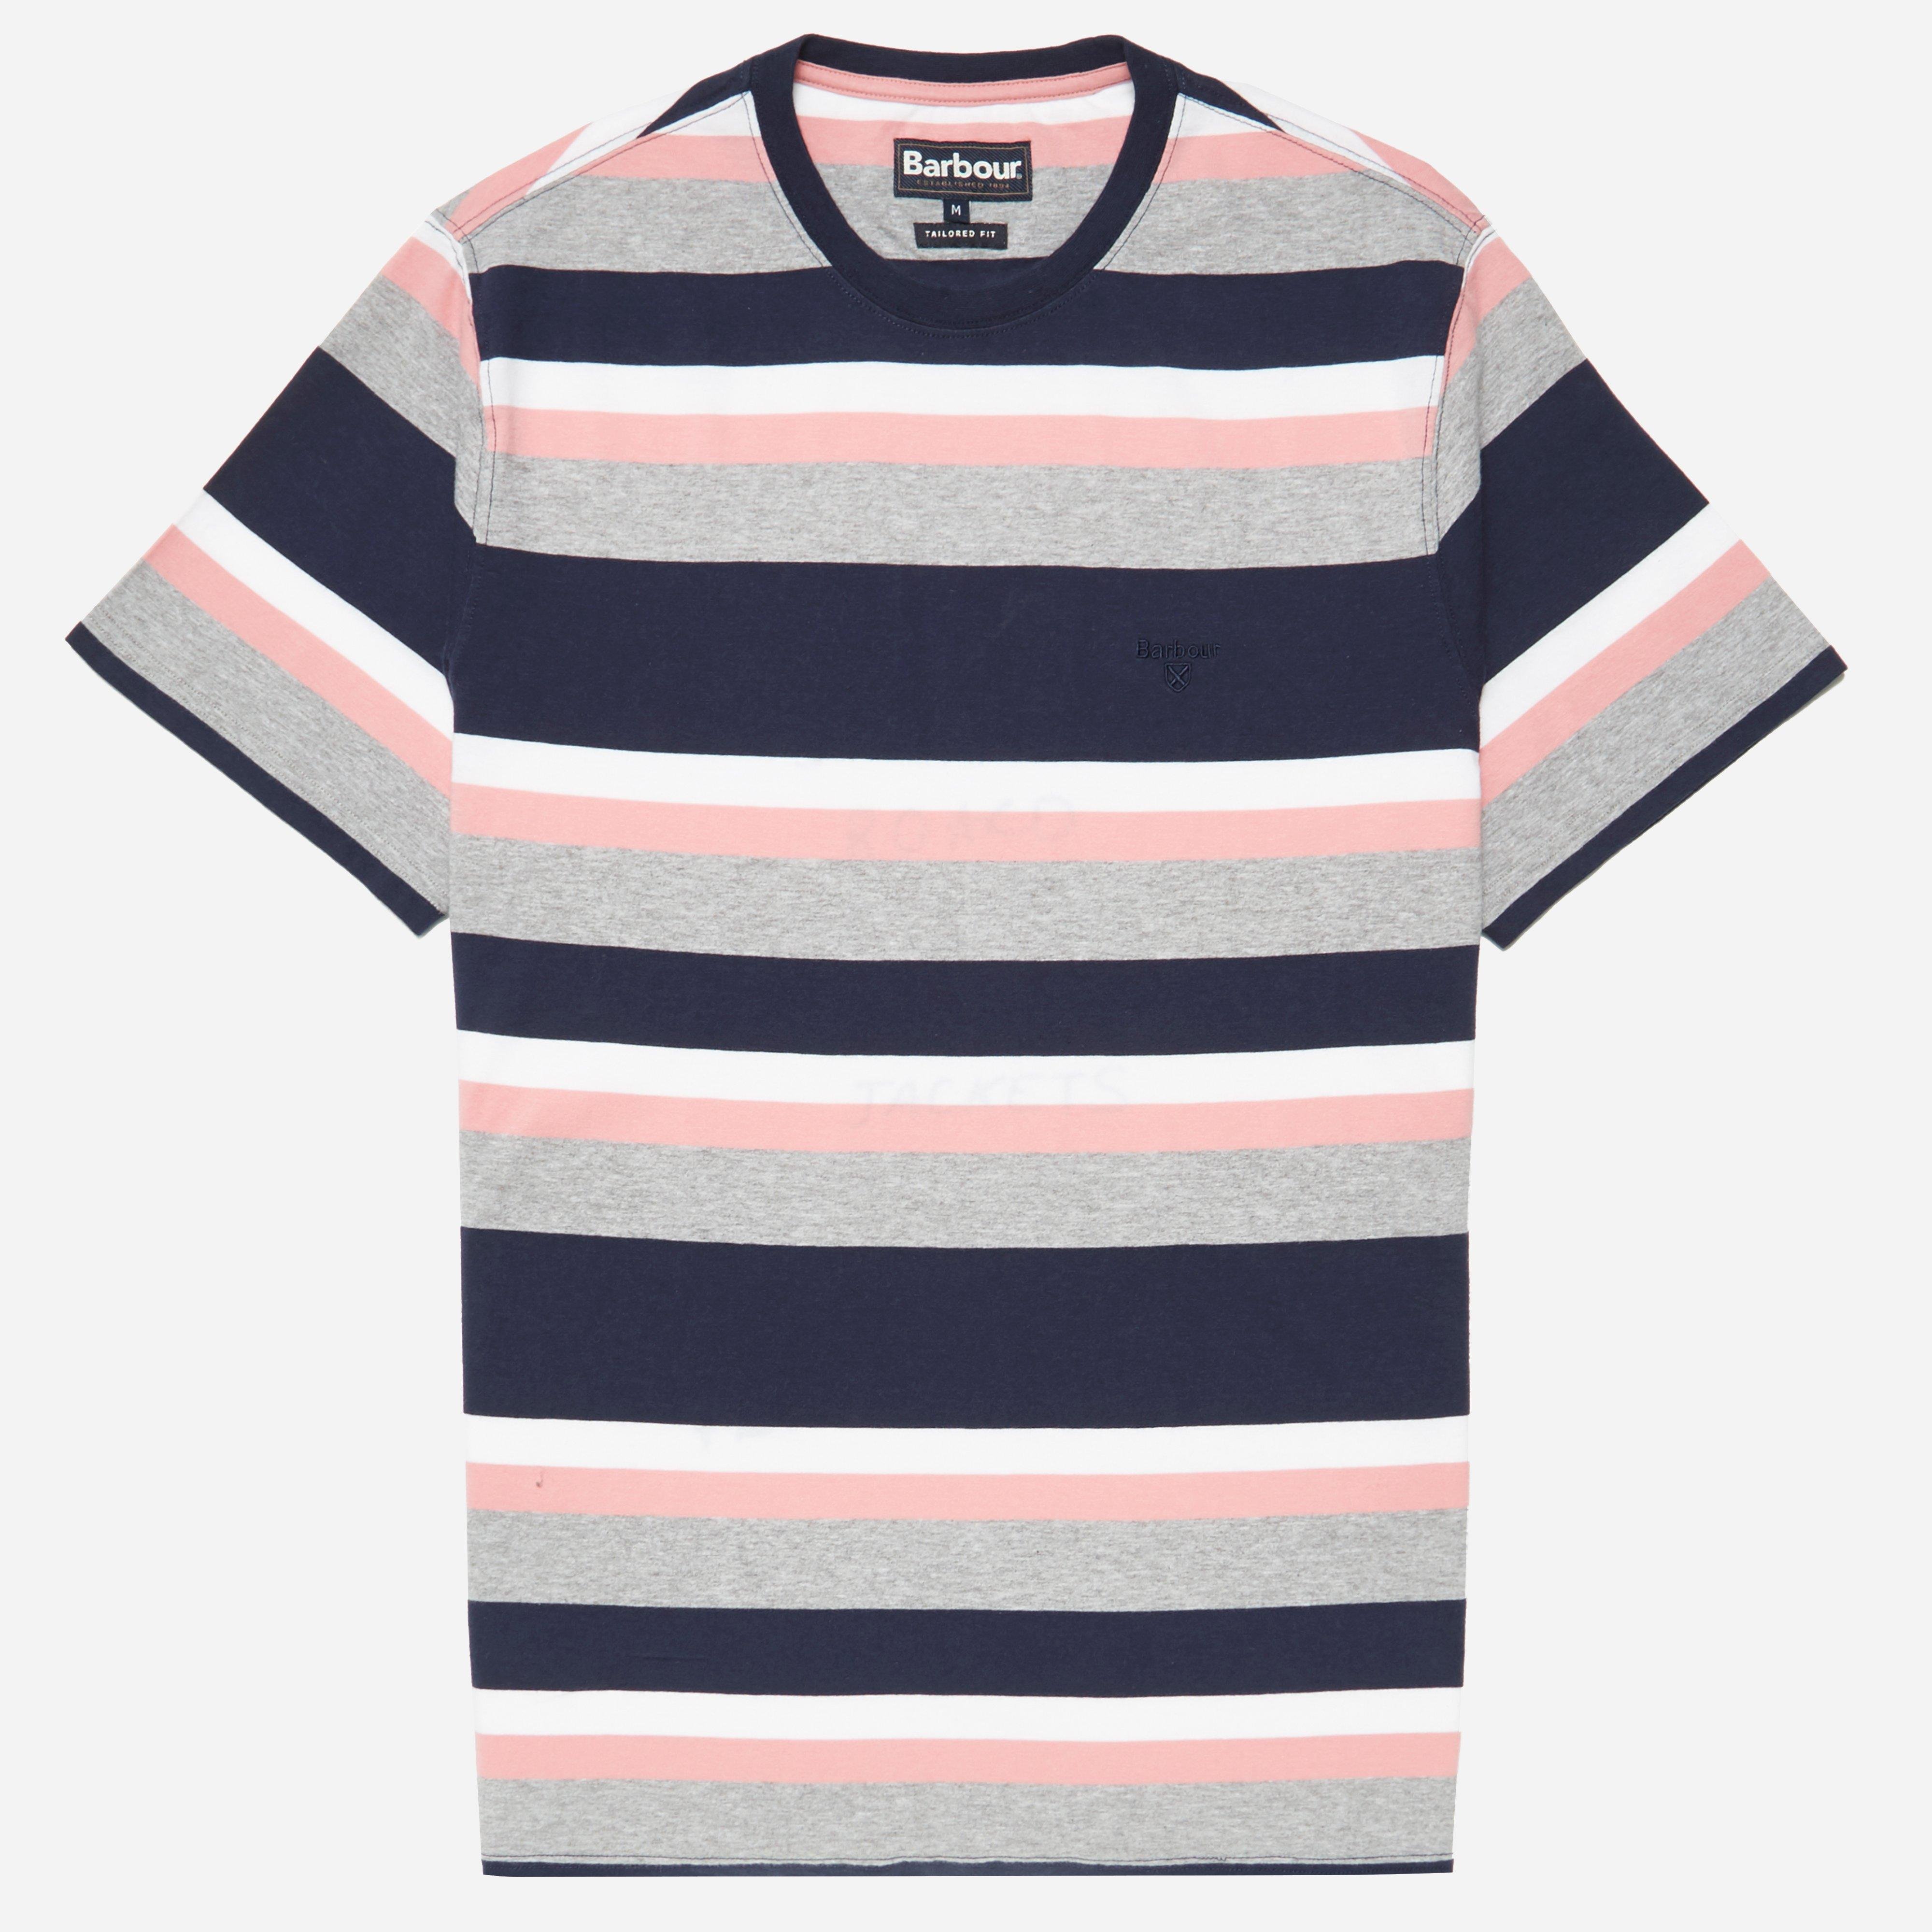 Barbour Foundry Stripe T-shirt